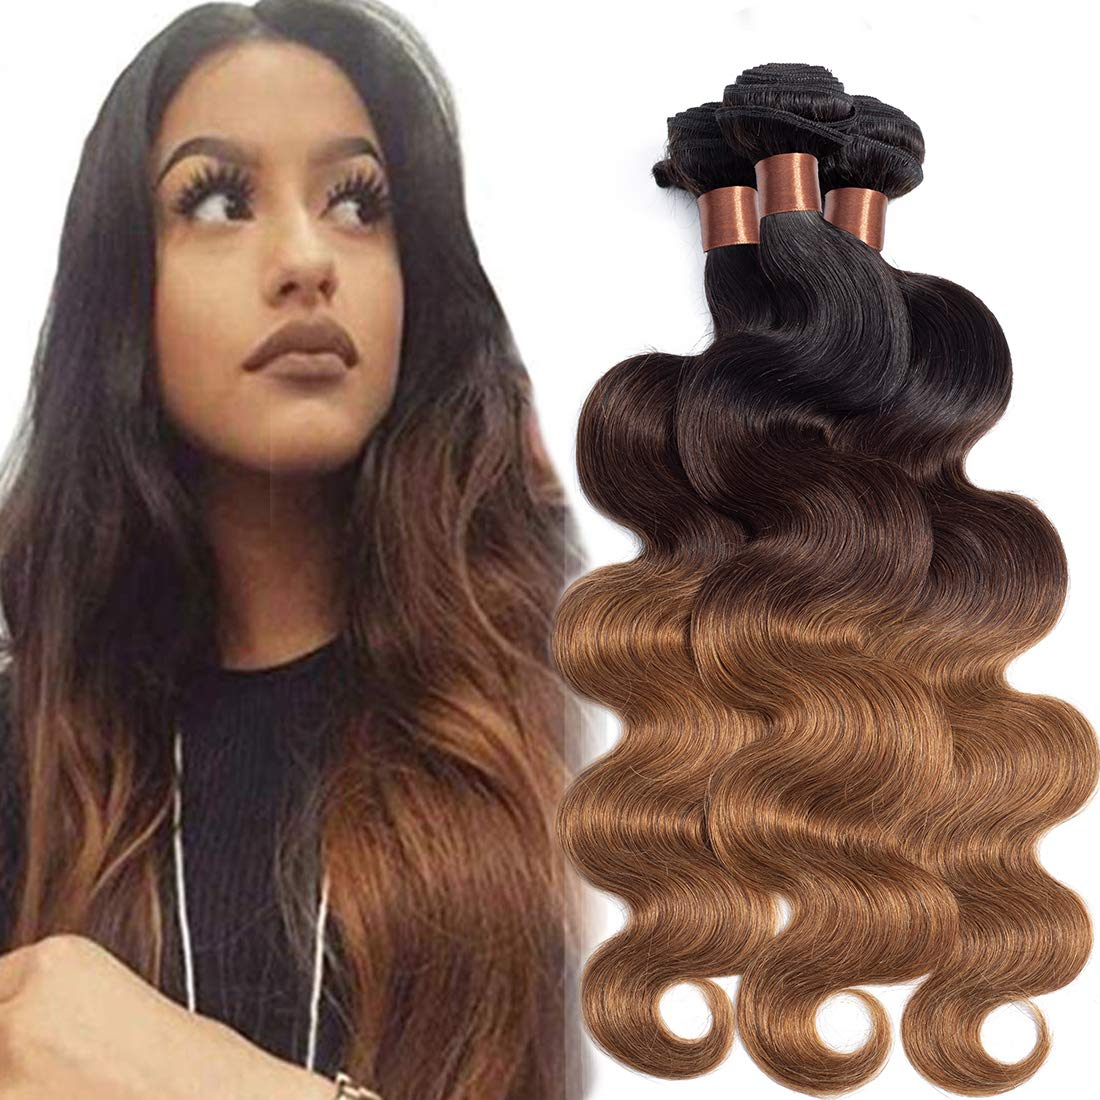 BLACKMOON HAIR Brazilian Virgin Ombre Hair Body Wave Hair Weave Three Bundles Unprocessed Virgin Ombre Human Hair Extensions T1B/4/30(20 20 20 Inch)